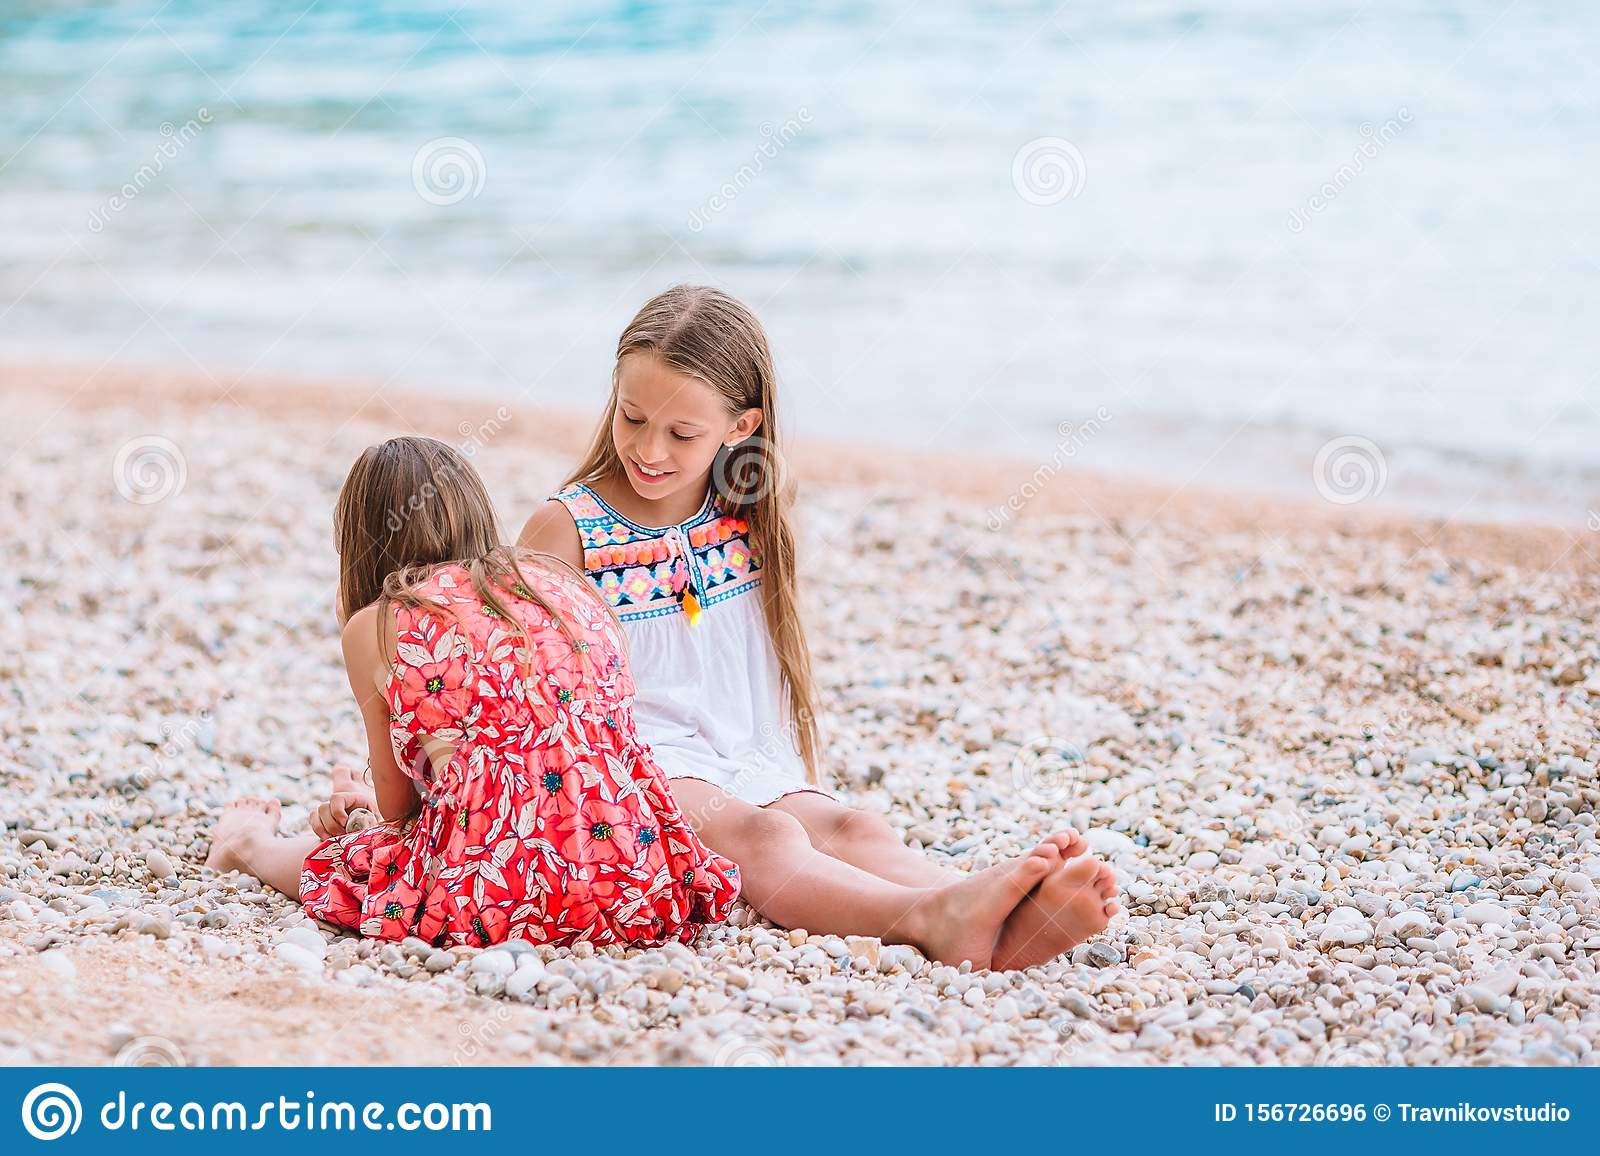 Two Little Girls At Tropical Beach In Philippines Stock